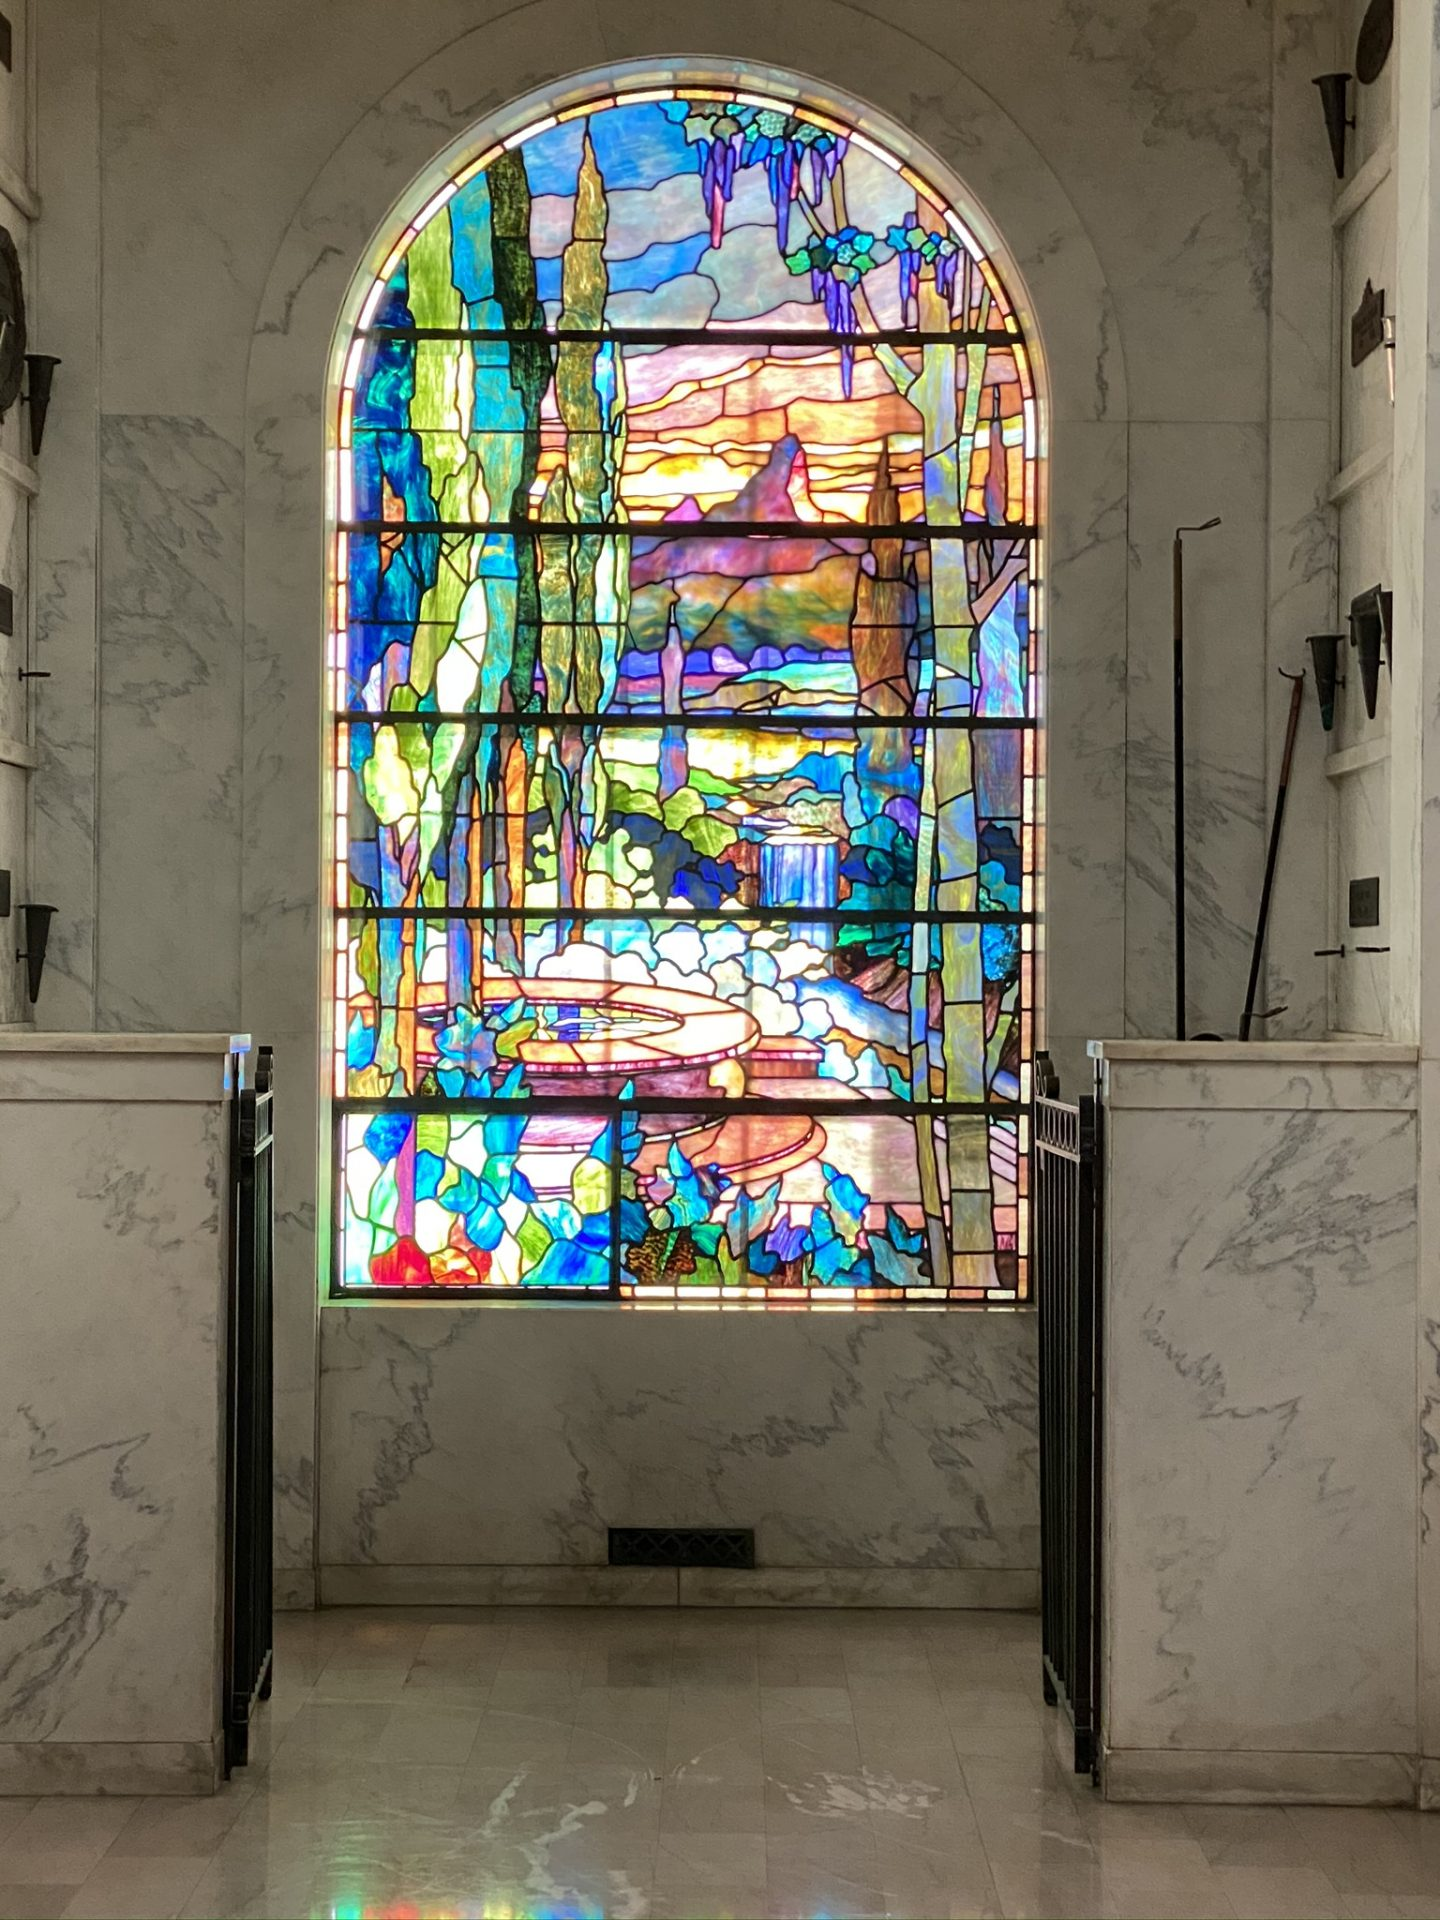 Image of colorful stained glass at one of the Hollywood Forever Cemeteries Mauseleums